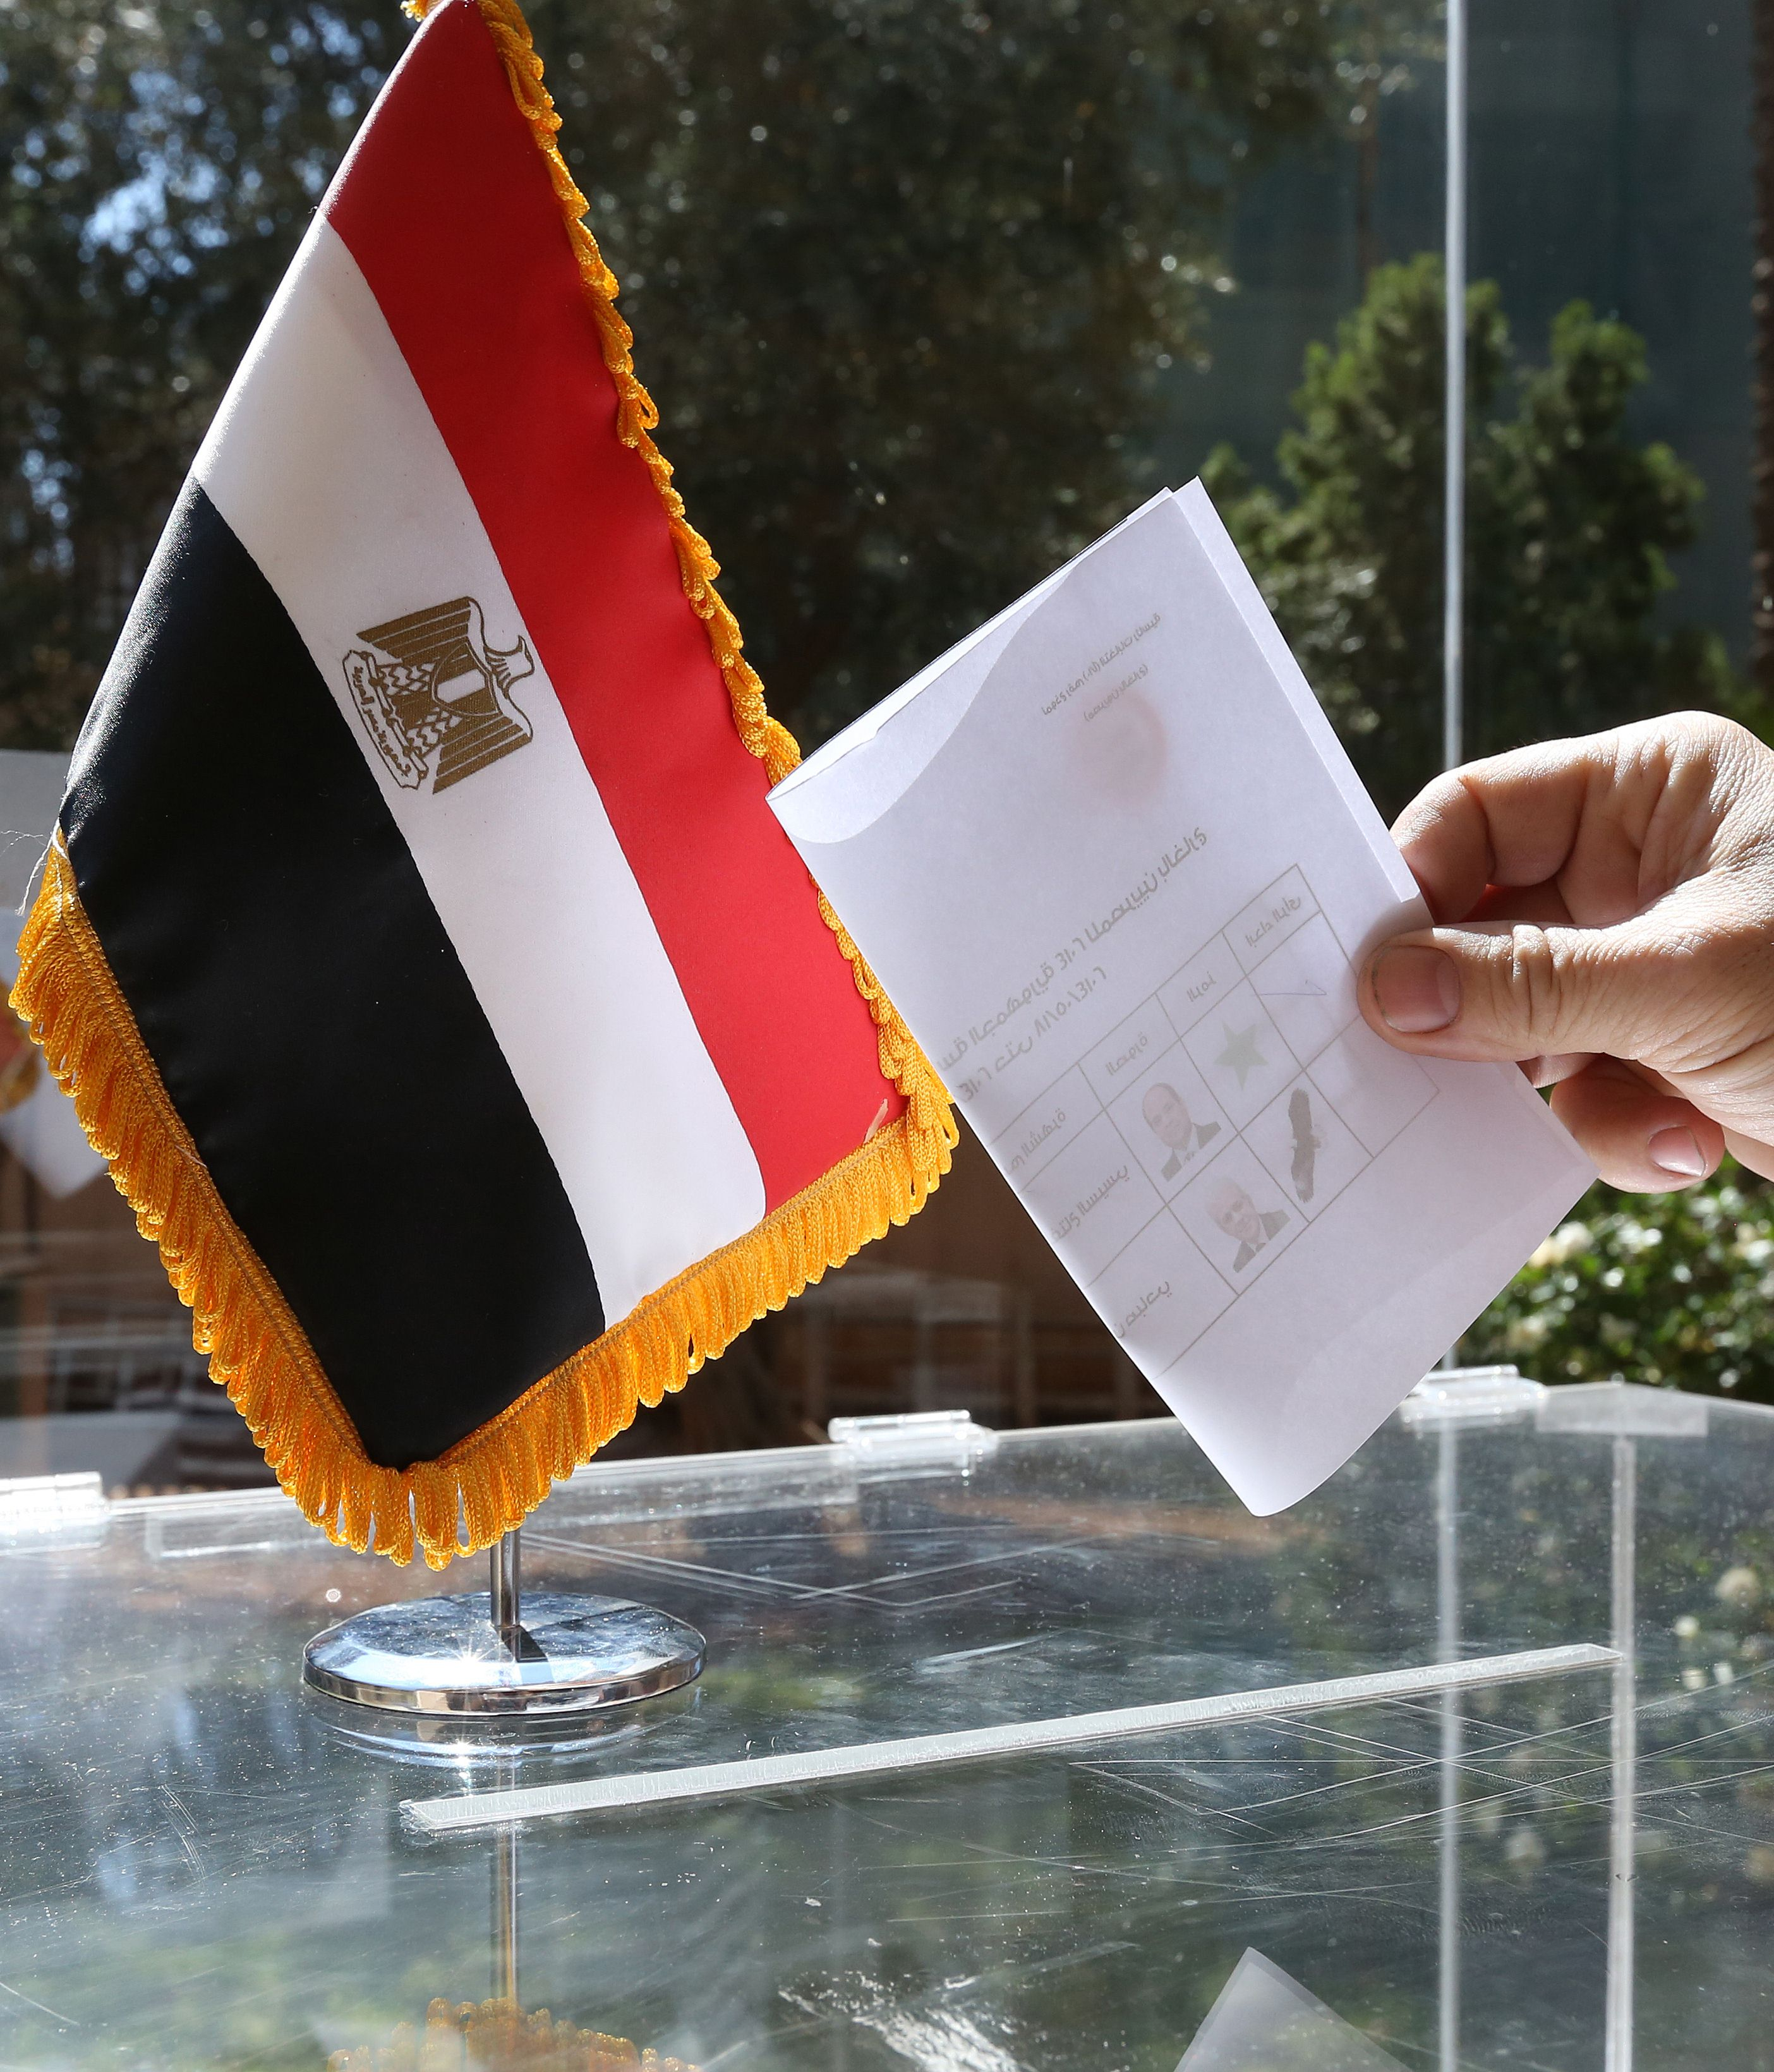 An Egyptian national residing in Lebanon casts his vote in his country's presidential elections at a polling station at the Egyptian embassy in Beirut on May 15, 2014. Egyptian expatriates around the world headed to the polls, casting the first votes to name a successor to deposed Islamist President Mohamed Morsi. (AFP PHOTO / ANWAR AMRO)